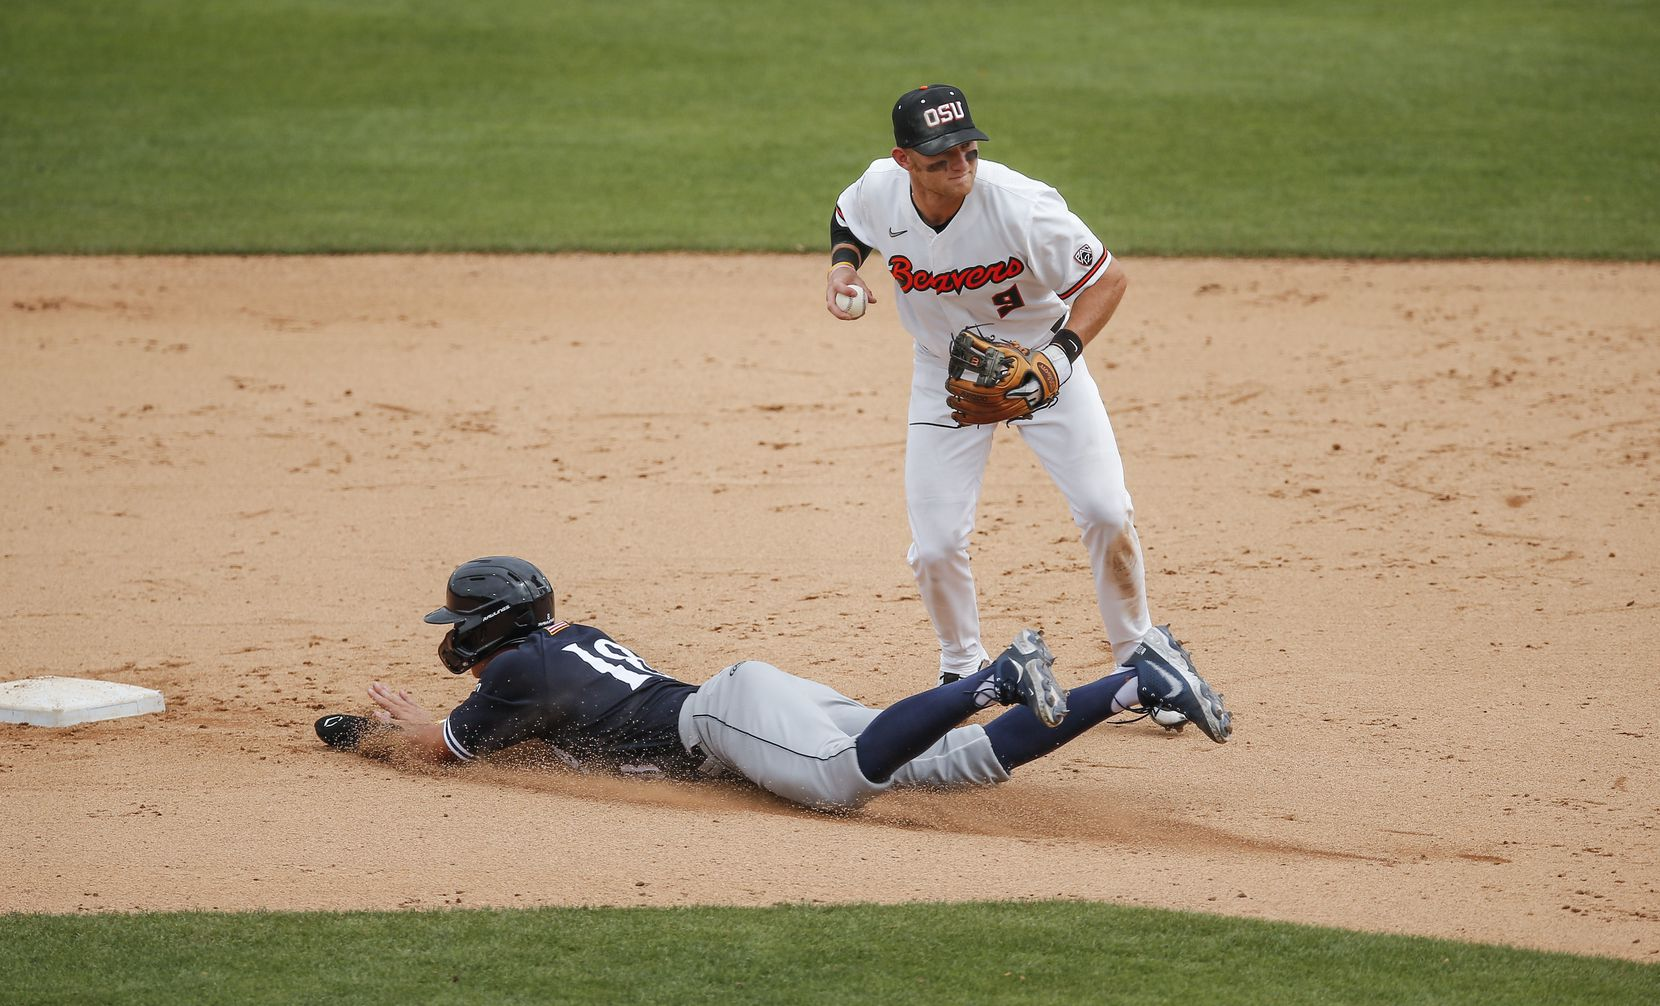 Oregon St. infielder Andy Armstrong (9) throws to first for a double play after forcing out DBU's Cole Moore (19) at second in the ninth inning during the NCAA Fort Worth Regional baseball tournament at TCU's Lupton Stadium in Fort Worth, Friday, June 4, 2021. Dallas Baptist won 6-5. (Brandon Wade/Special Contributor)